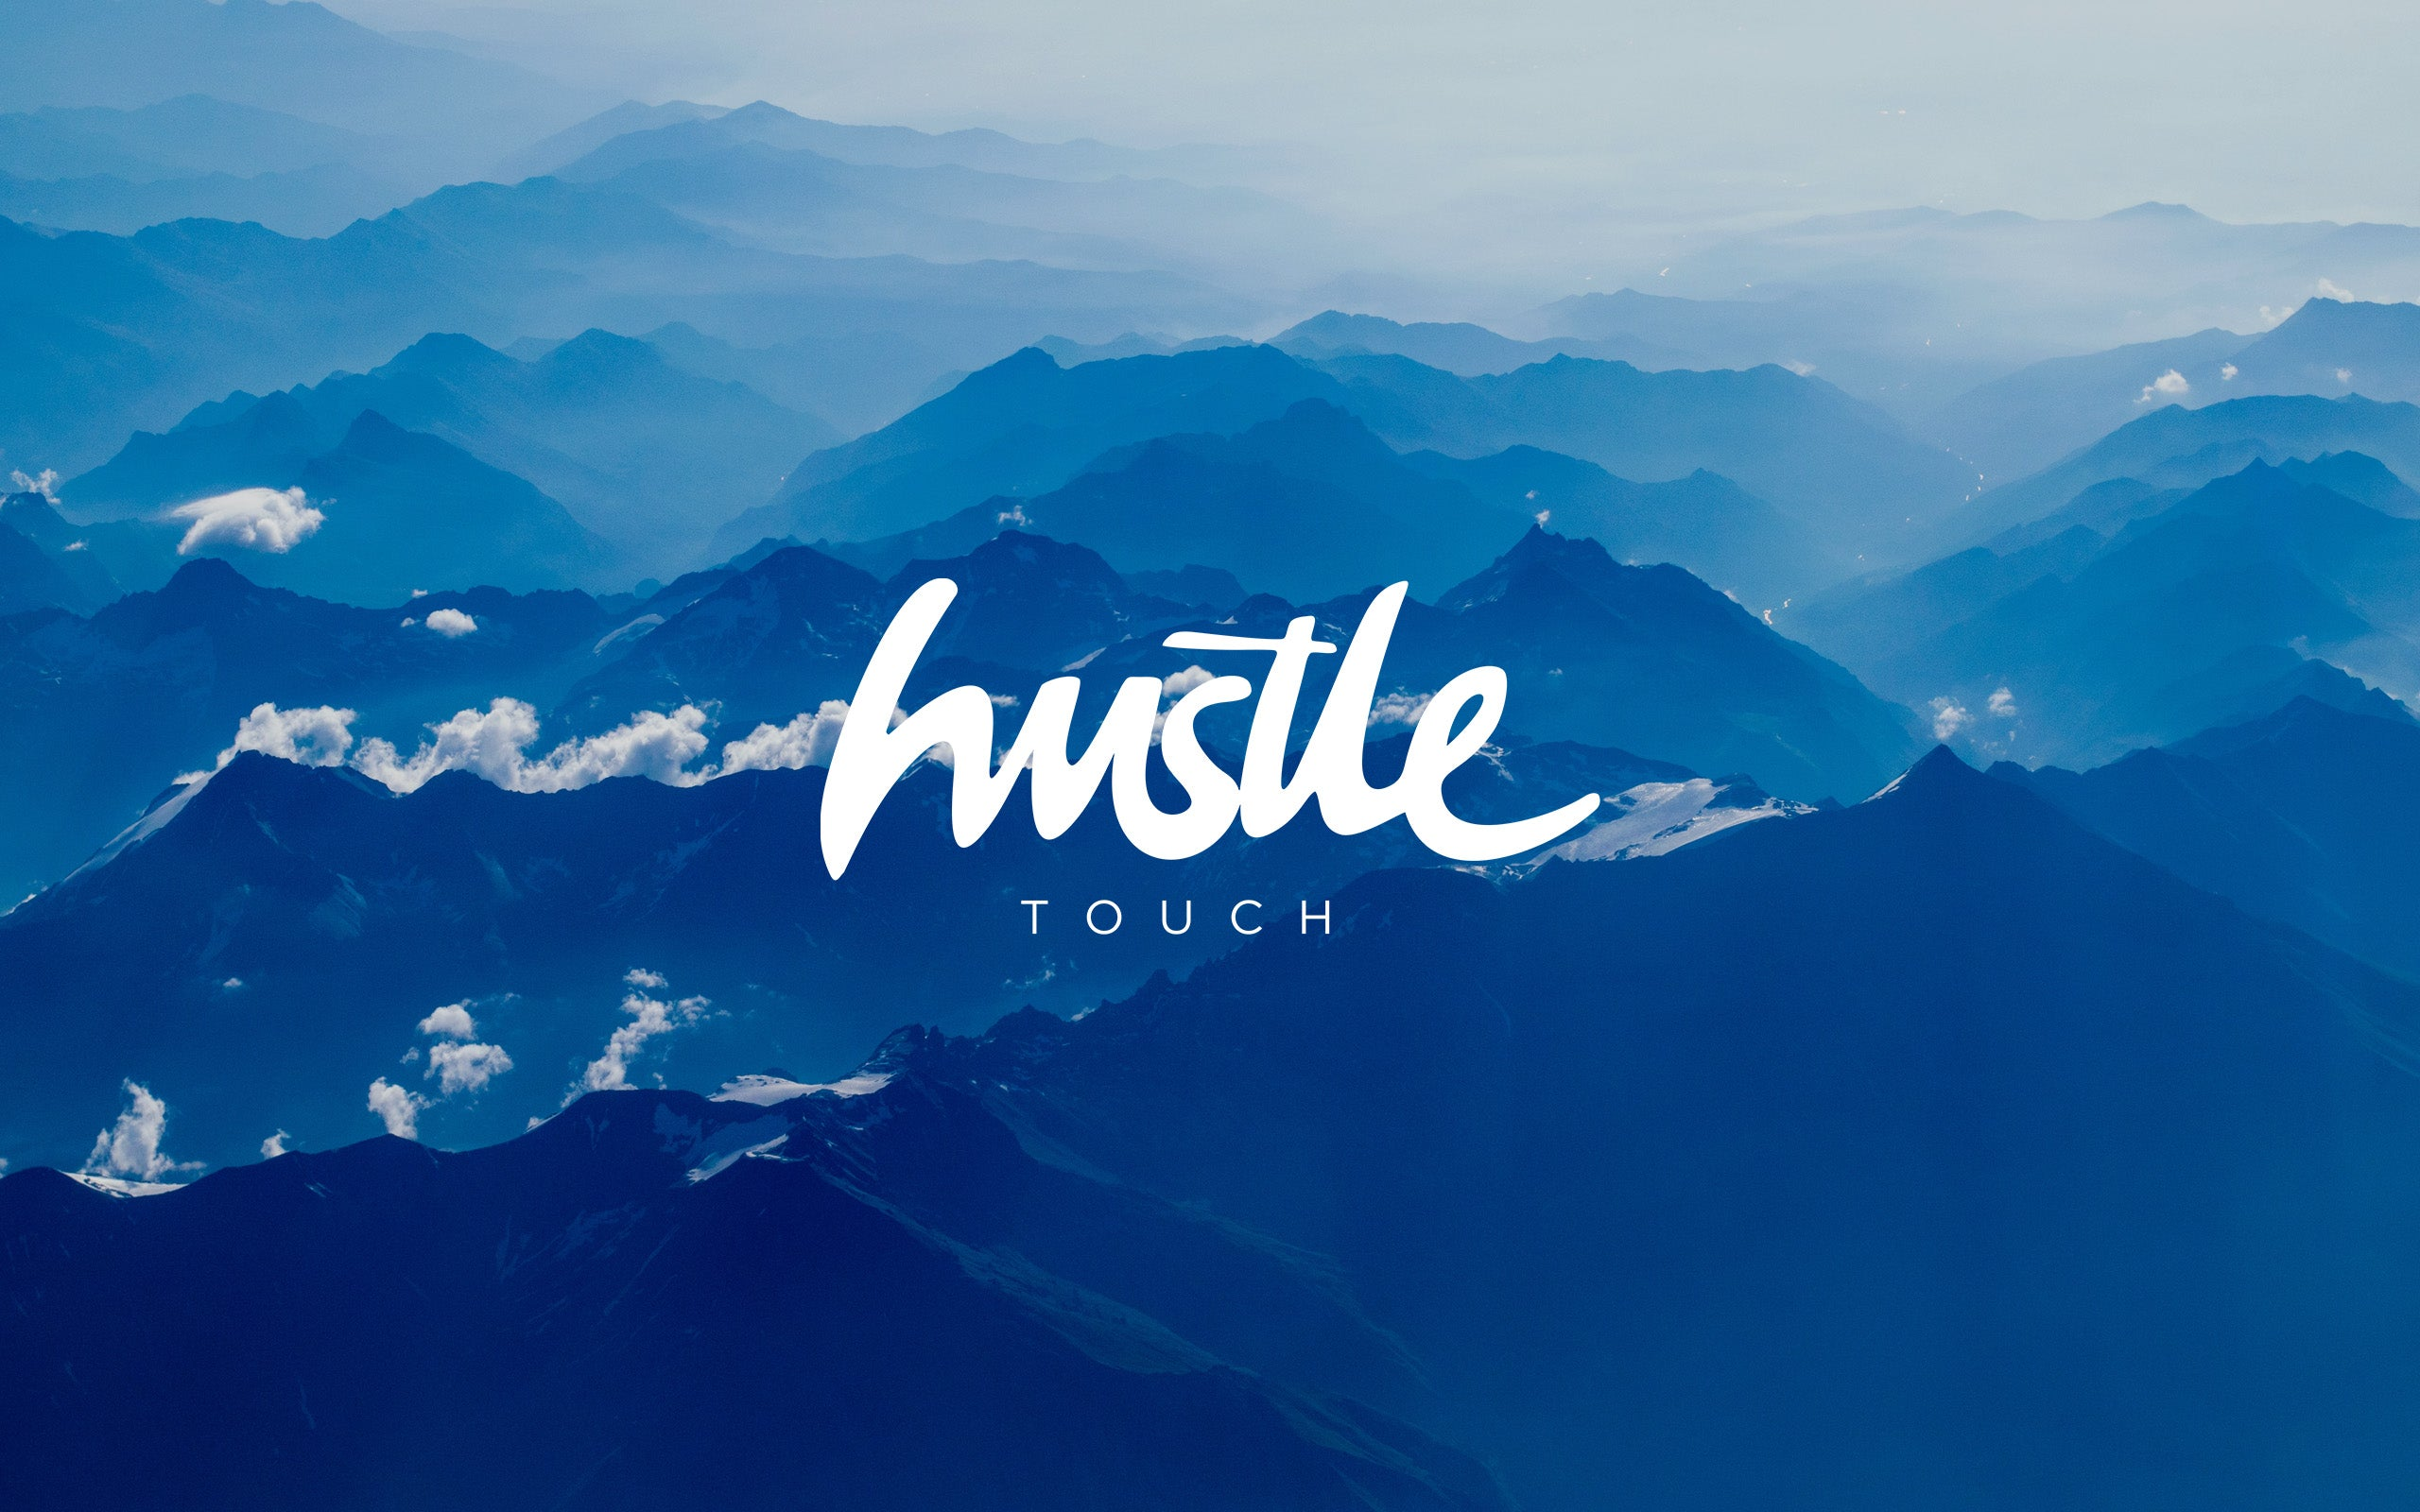 Get our Hustle Touch Wallpaper 077 for free. Give your setup a special hustle vibe with our wallpaper.